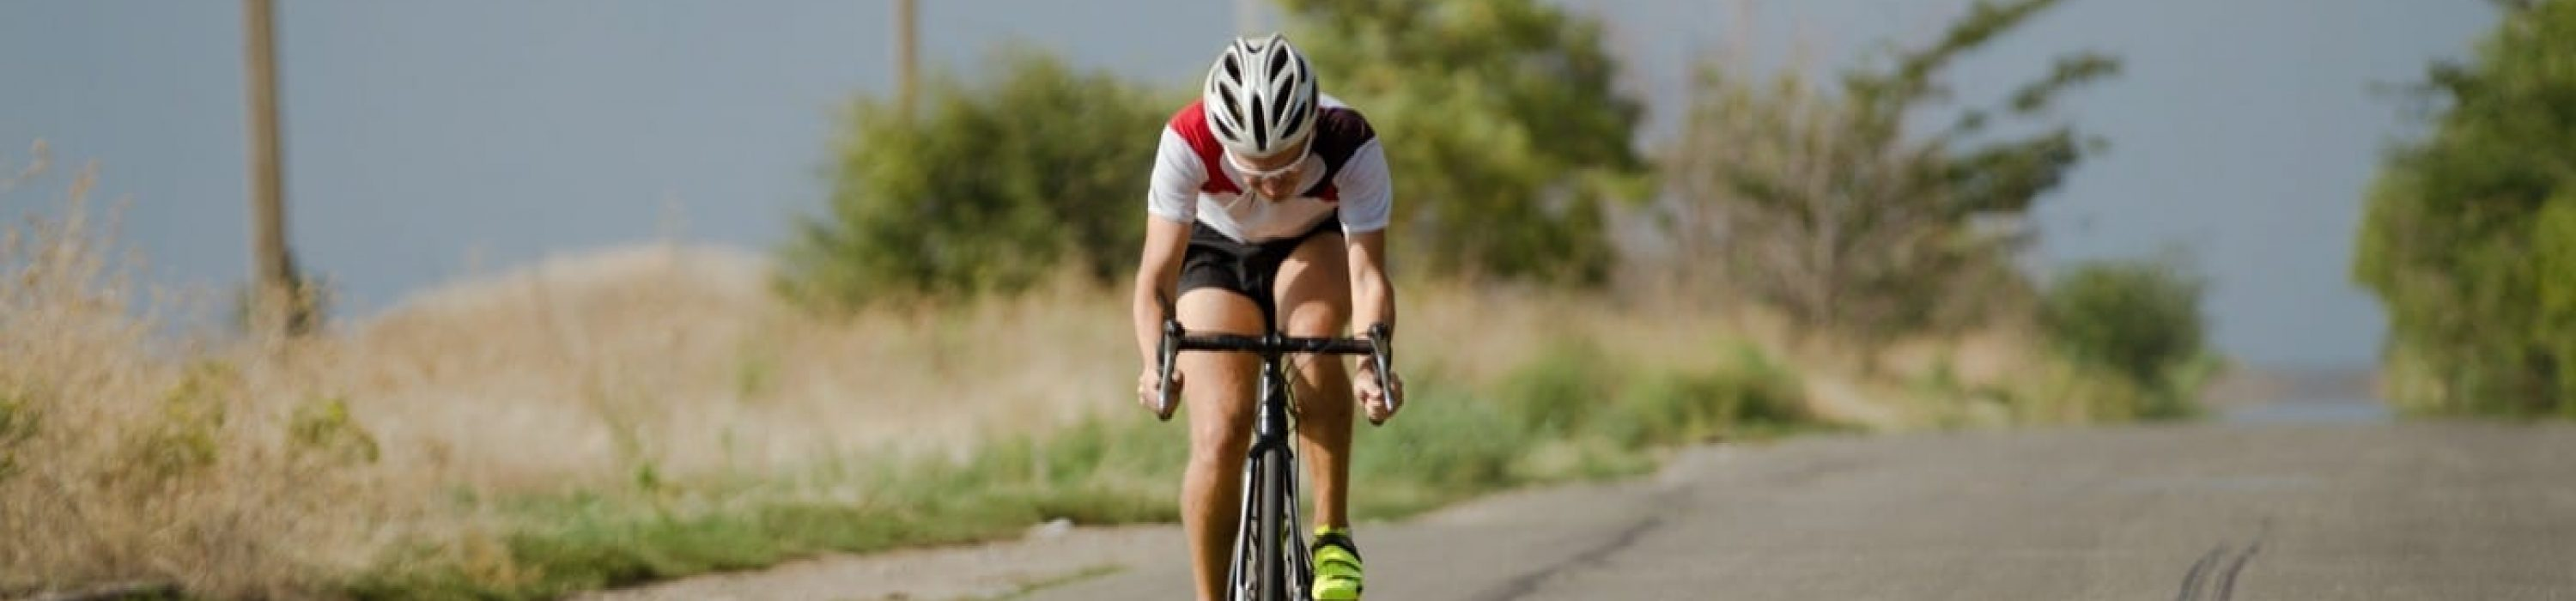 Road bike training with a power meter